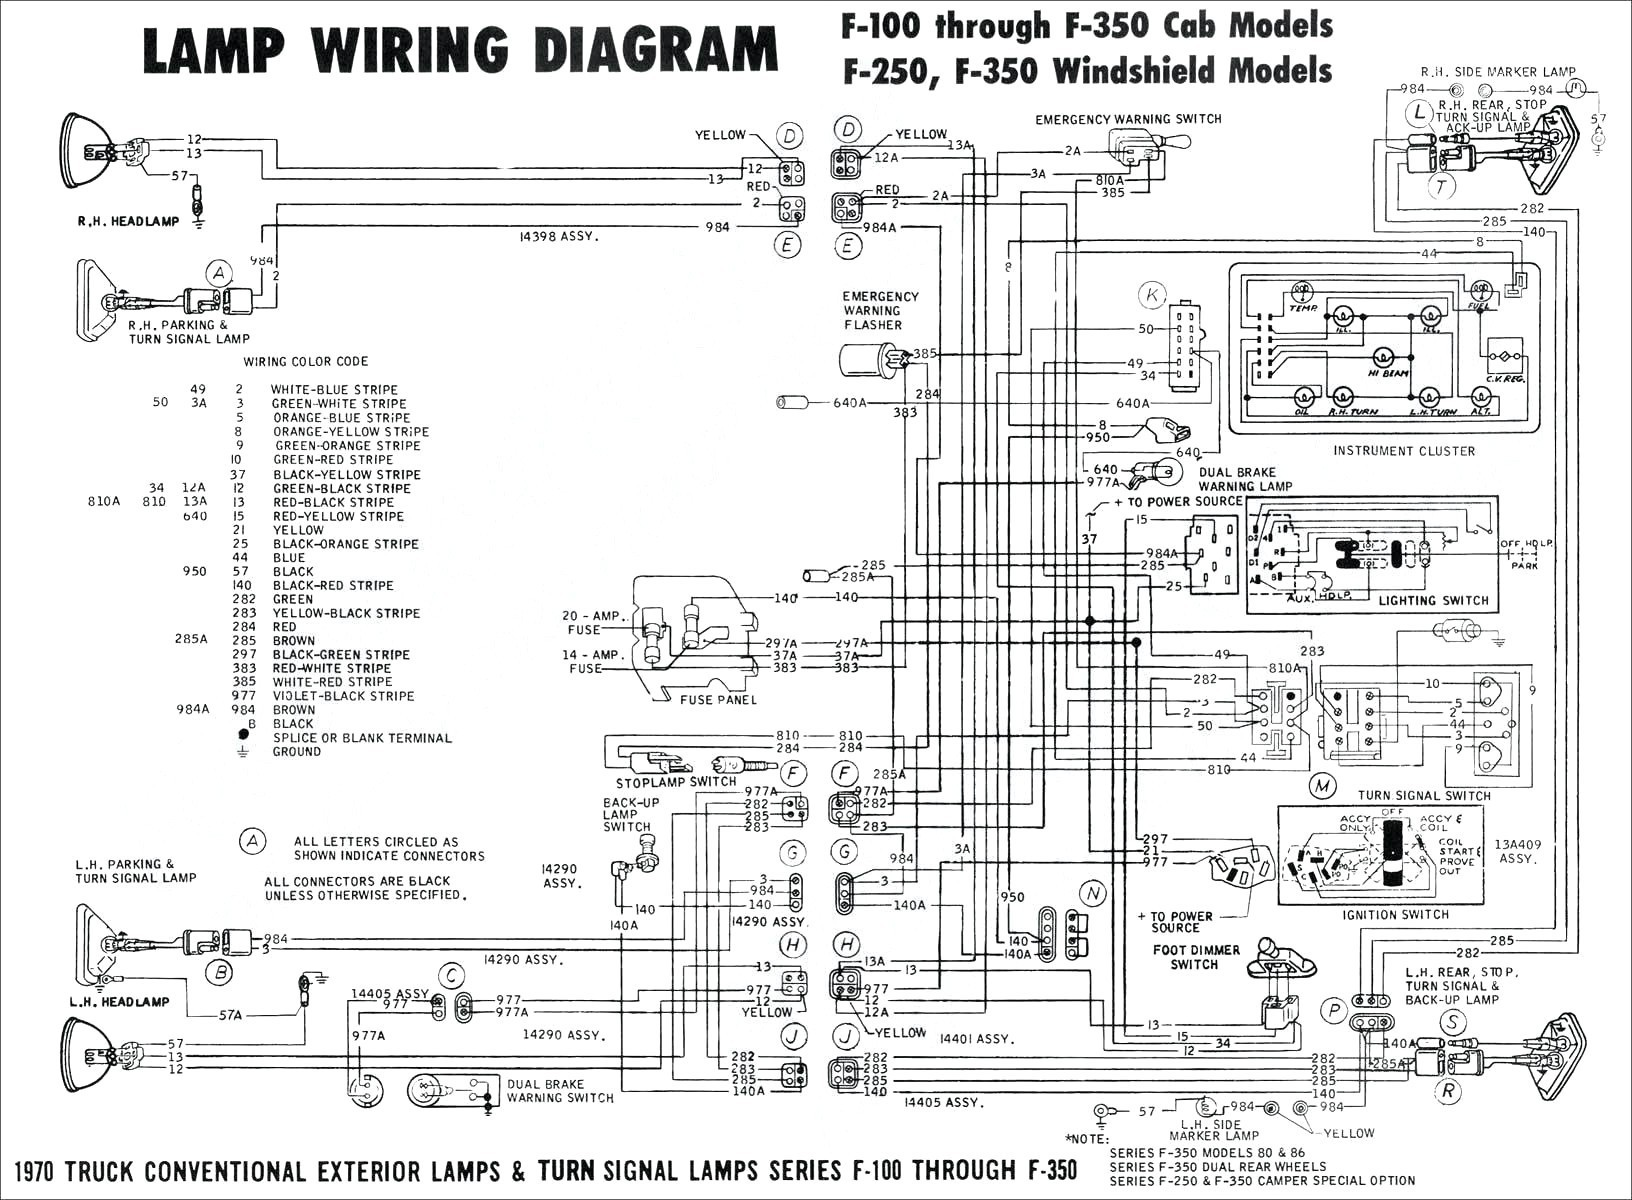 1996 dodge caravan fuse diagram